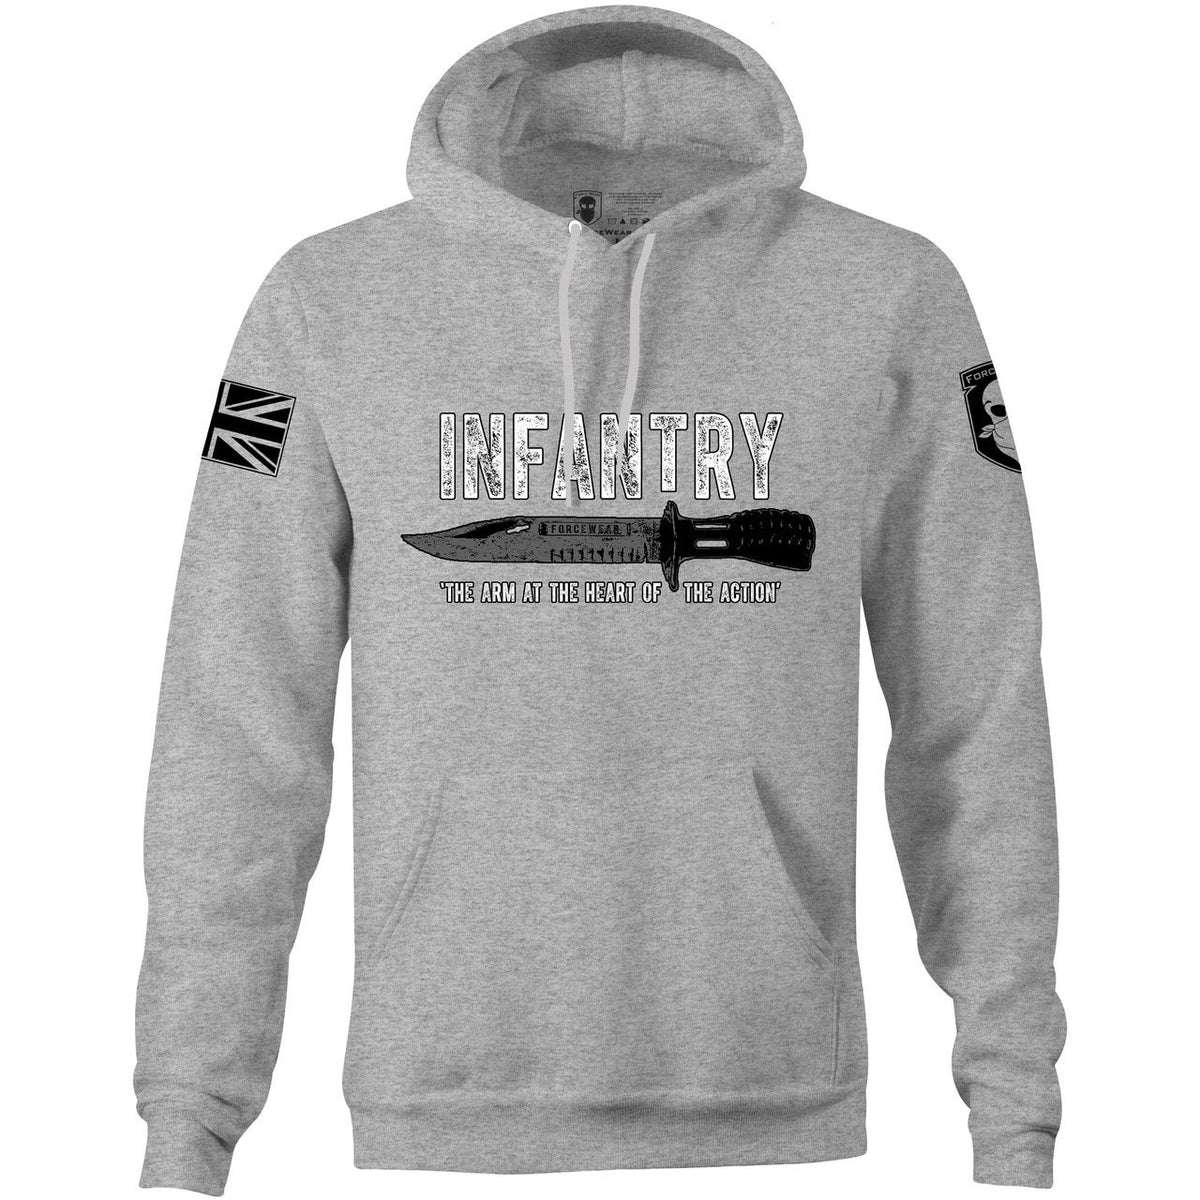 'AT THE HEART OF THE ACTION' HOODIE-NEW DESIGNS (ALL BRANDS)-Force Wear HQ